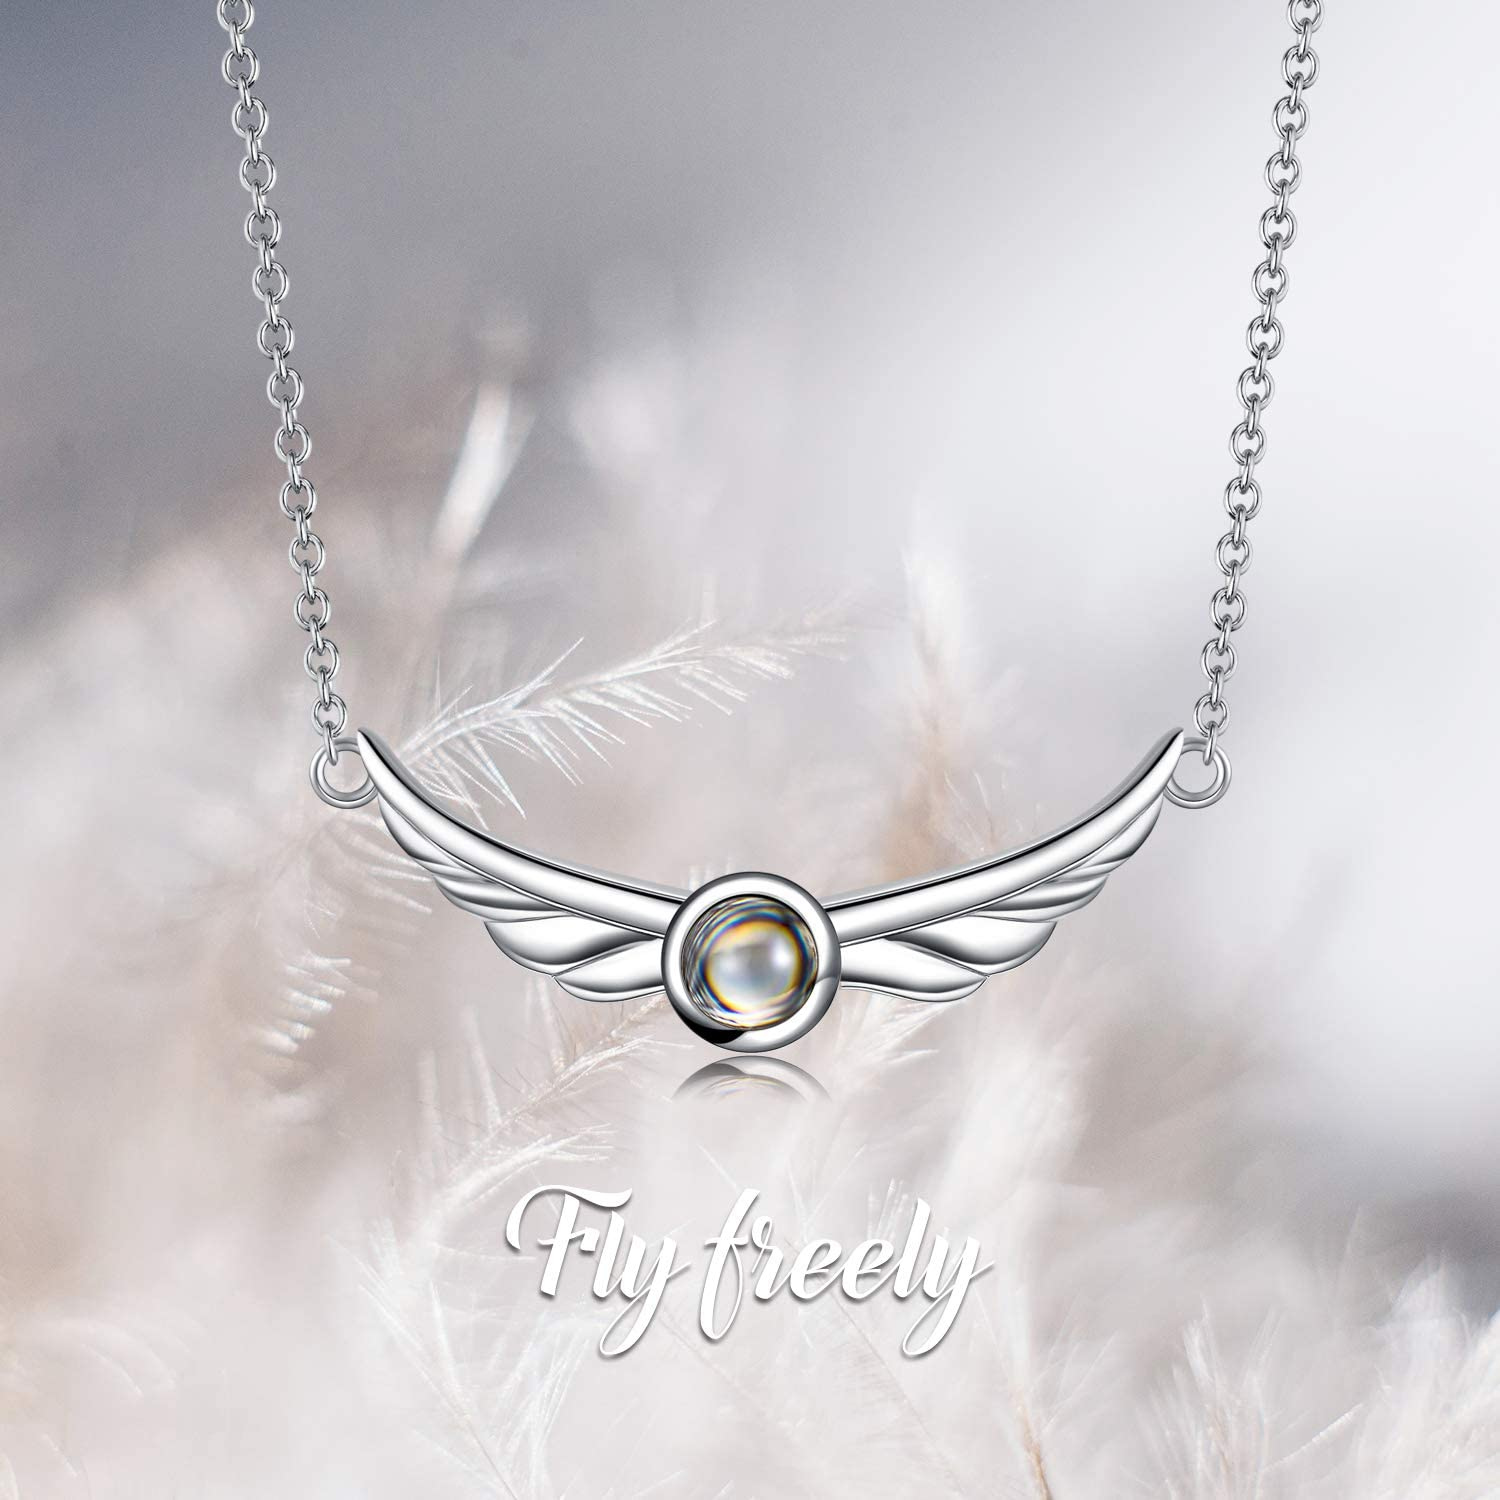 Evil Eye Wings Snake Jewelry for Women Birthday SOULMEET 925 Sterling Silver I Love You Necklace 100 Languages